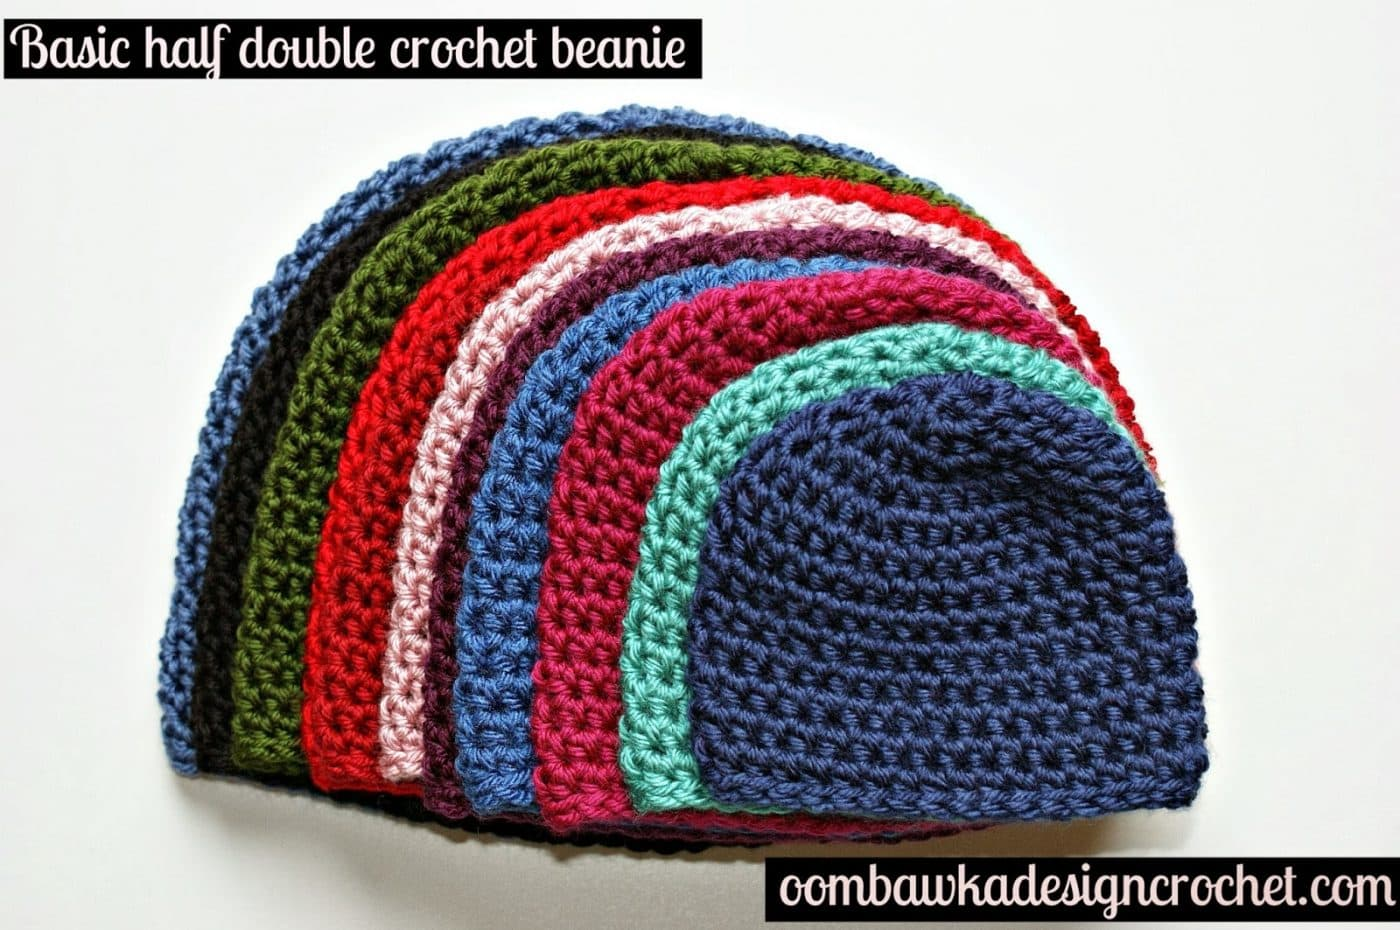 Crocheting Hdc : how to crochet: half double crochet stitches (hdc)